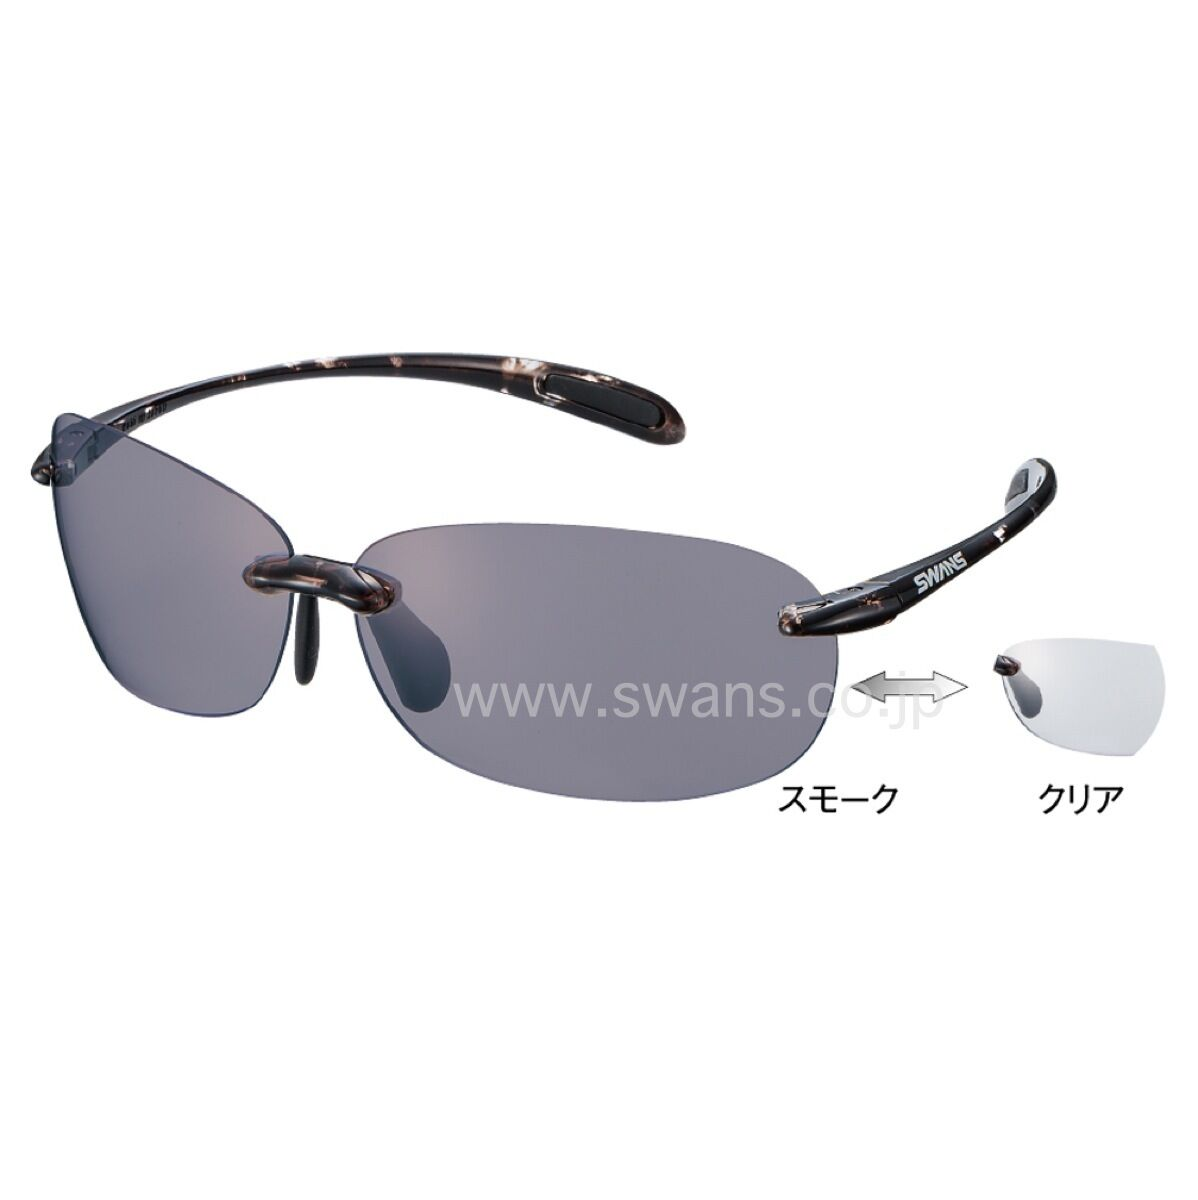 SWANS Sunglasses Japan Lightweight PhotochromicAUTO  UV cut SABE0066 DMSM2